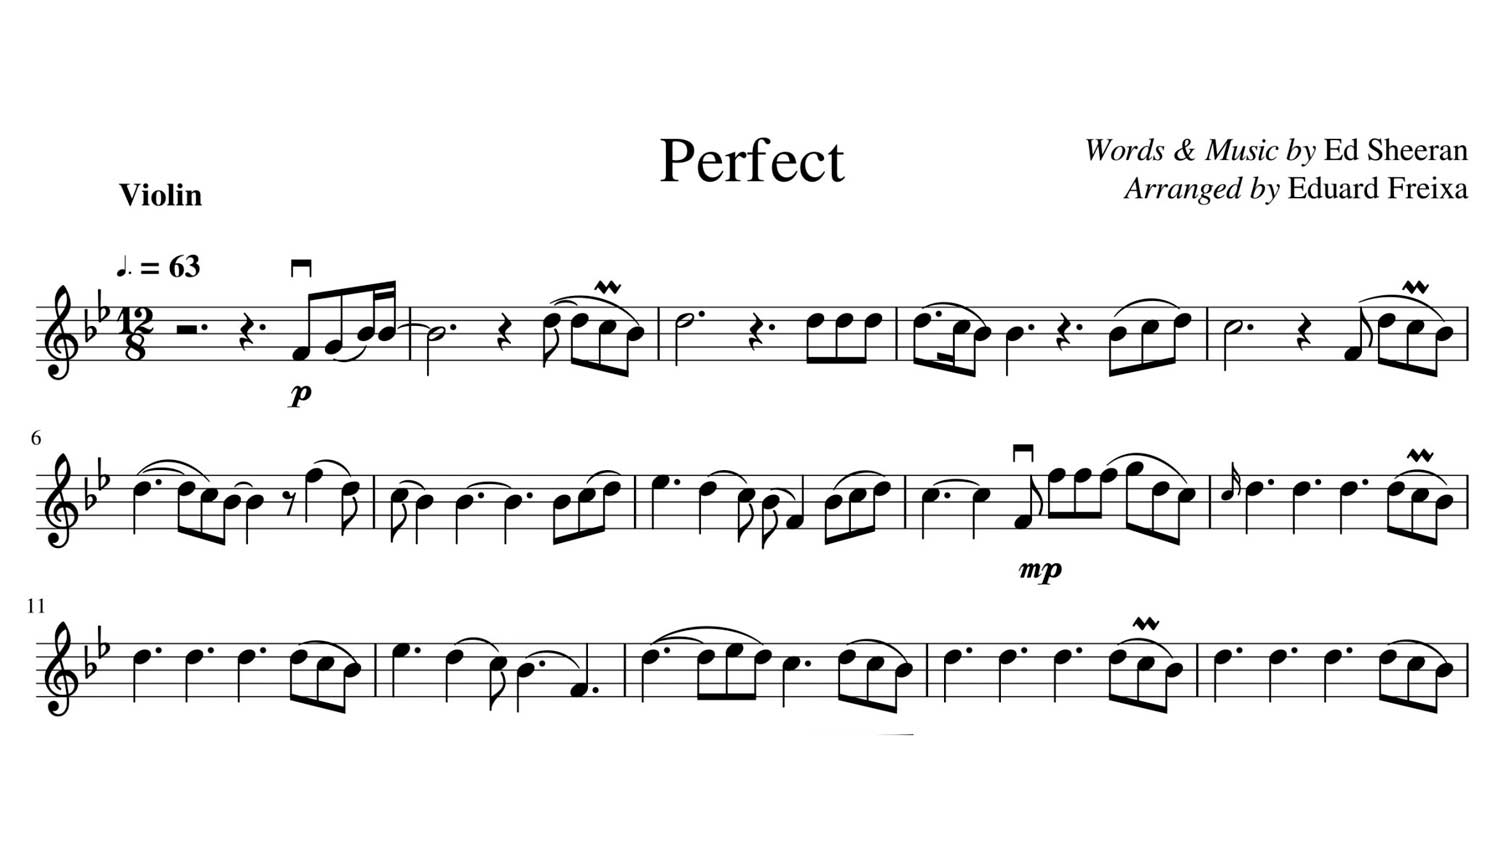 Eduard freixa sheet music transcription - My Sheet Music Transcriptions